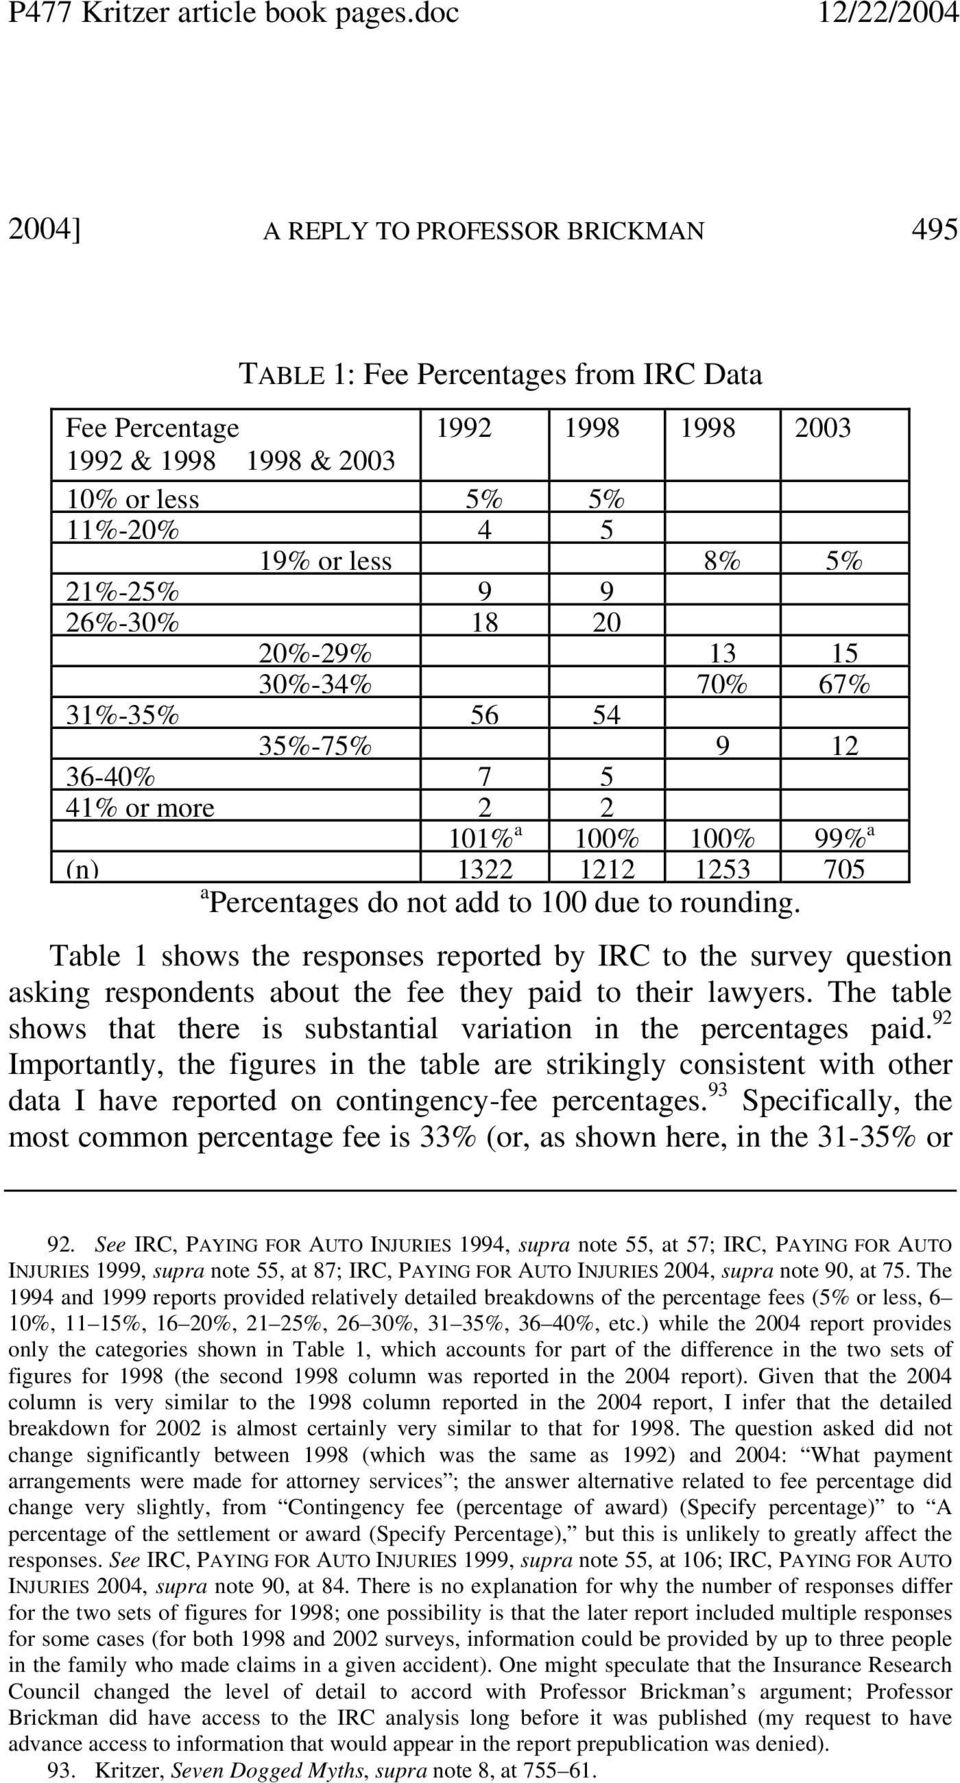 Table 1 shows the responses reported by IRC to the survey question asking respondents about the fee they paid to their lawyers.